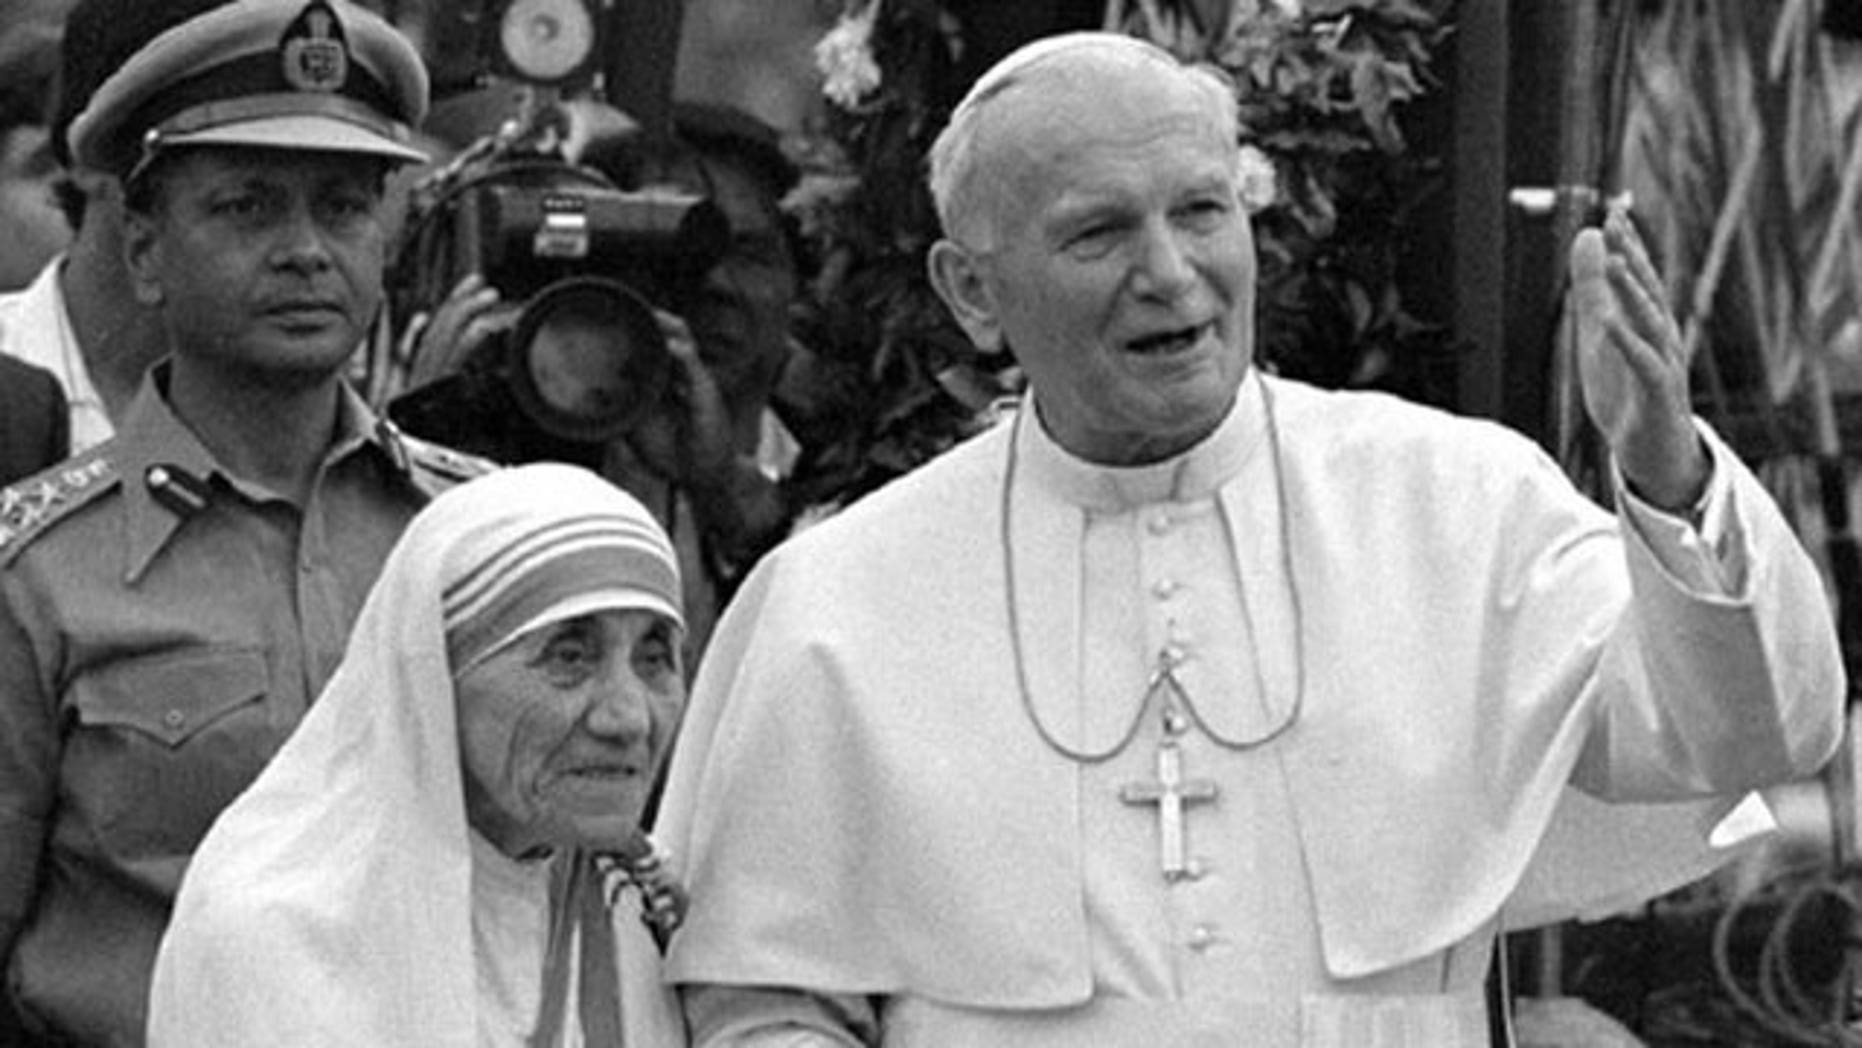 Pope John Paul II holds hands with Mother Teresa after visiting the Casa del Cuore Puro, Mother Teresa's home for the destitute and dying in the eastern Indian city of Calcutta, in this Feb. 3, 1986 file photo.